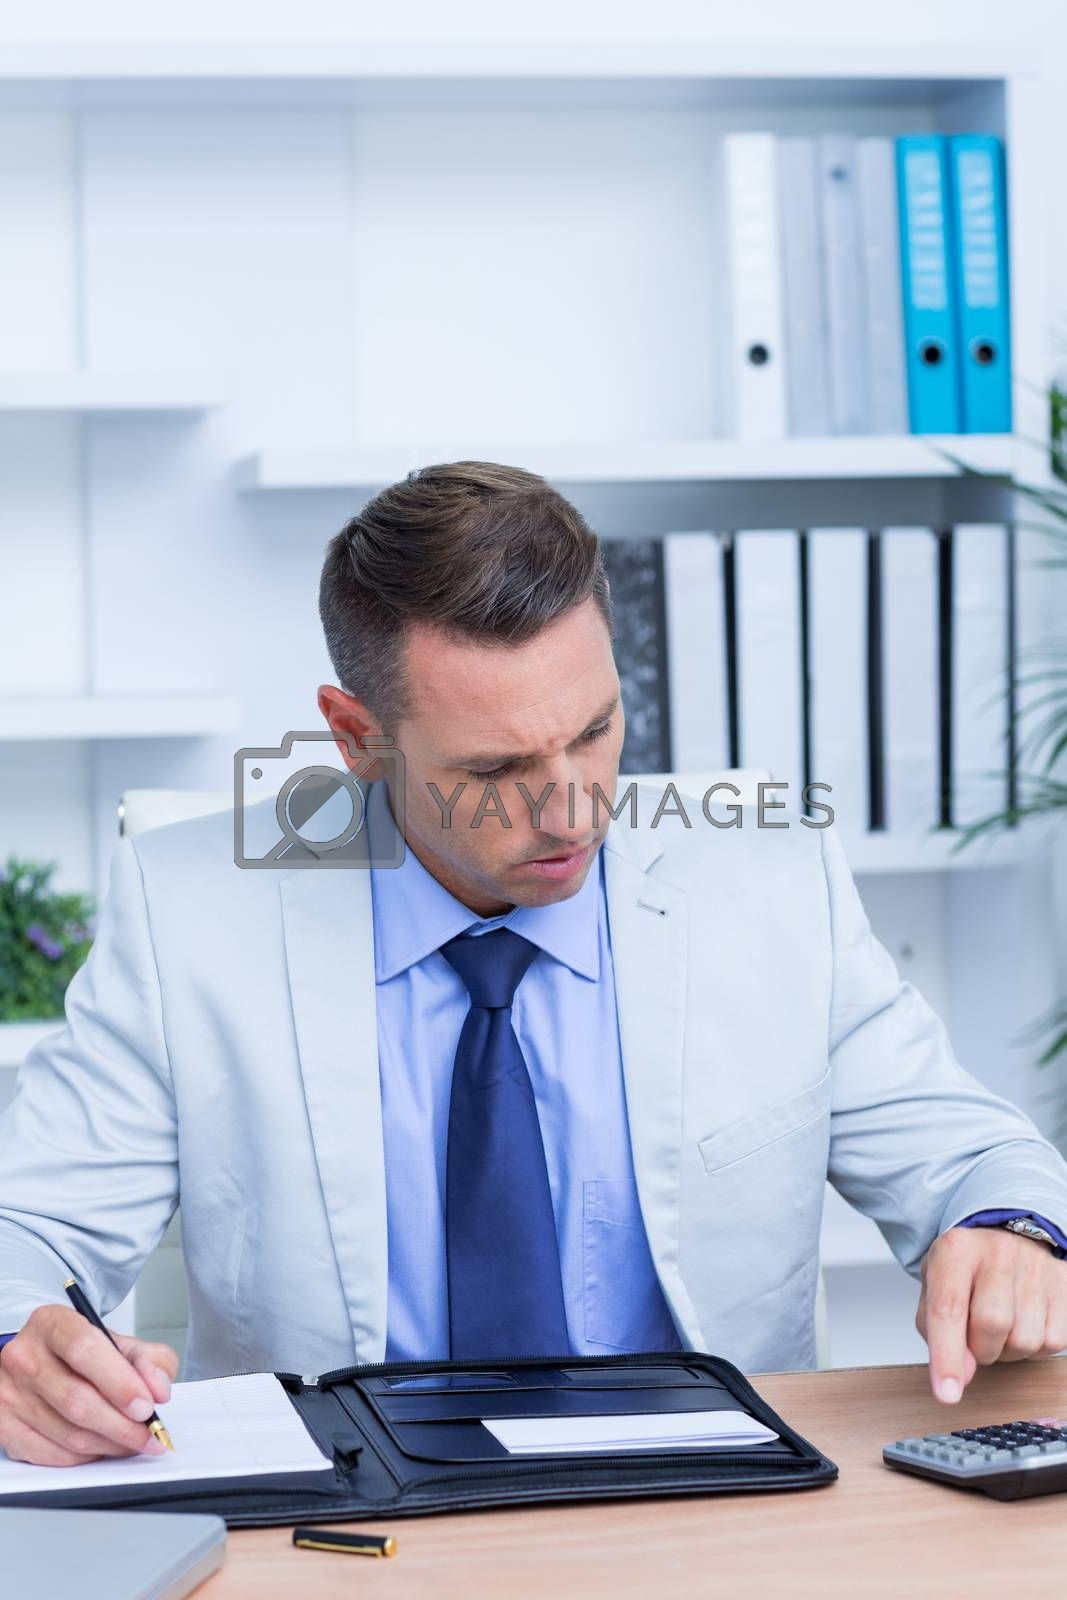 Royalty free image of Professional businessman doing some calculations by Wavebreakmedia